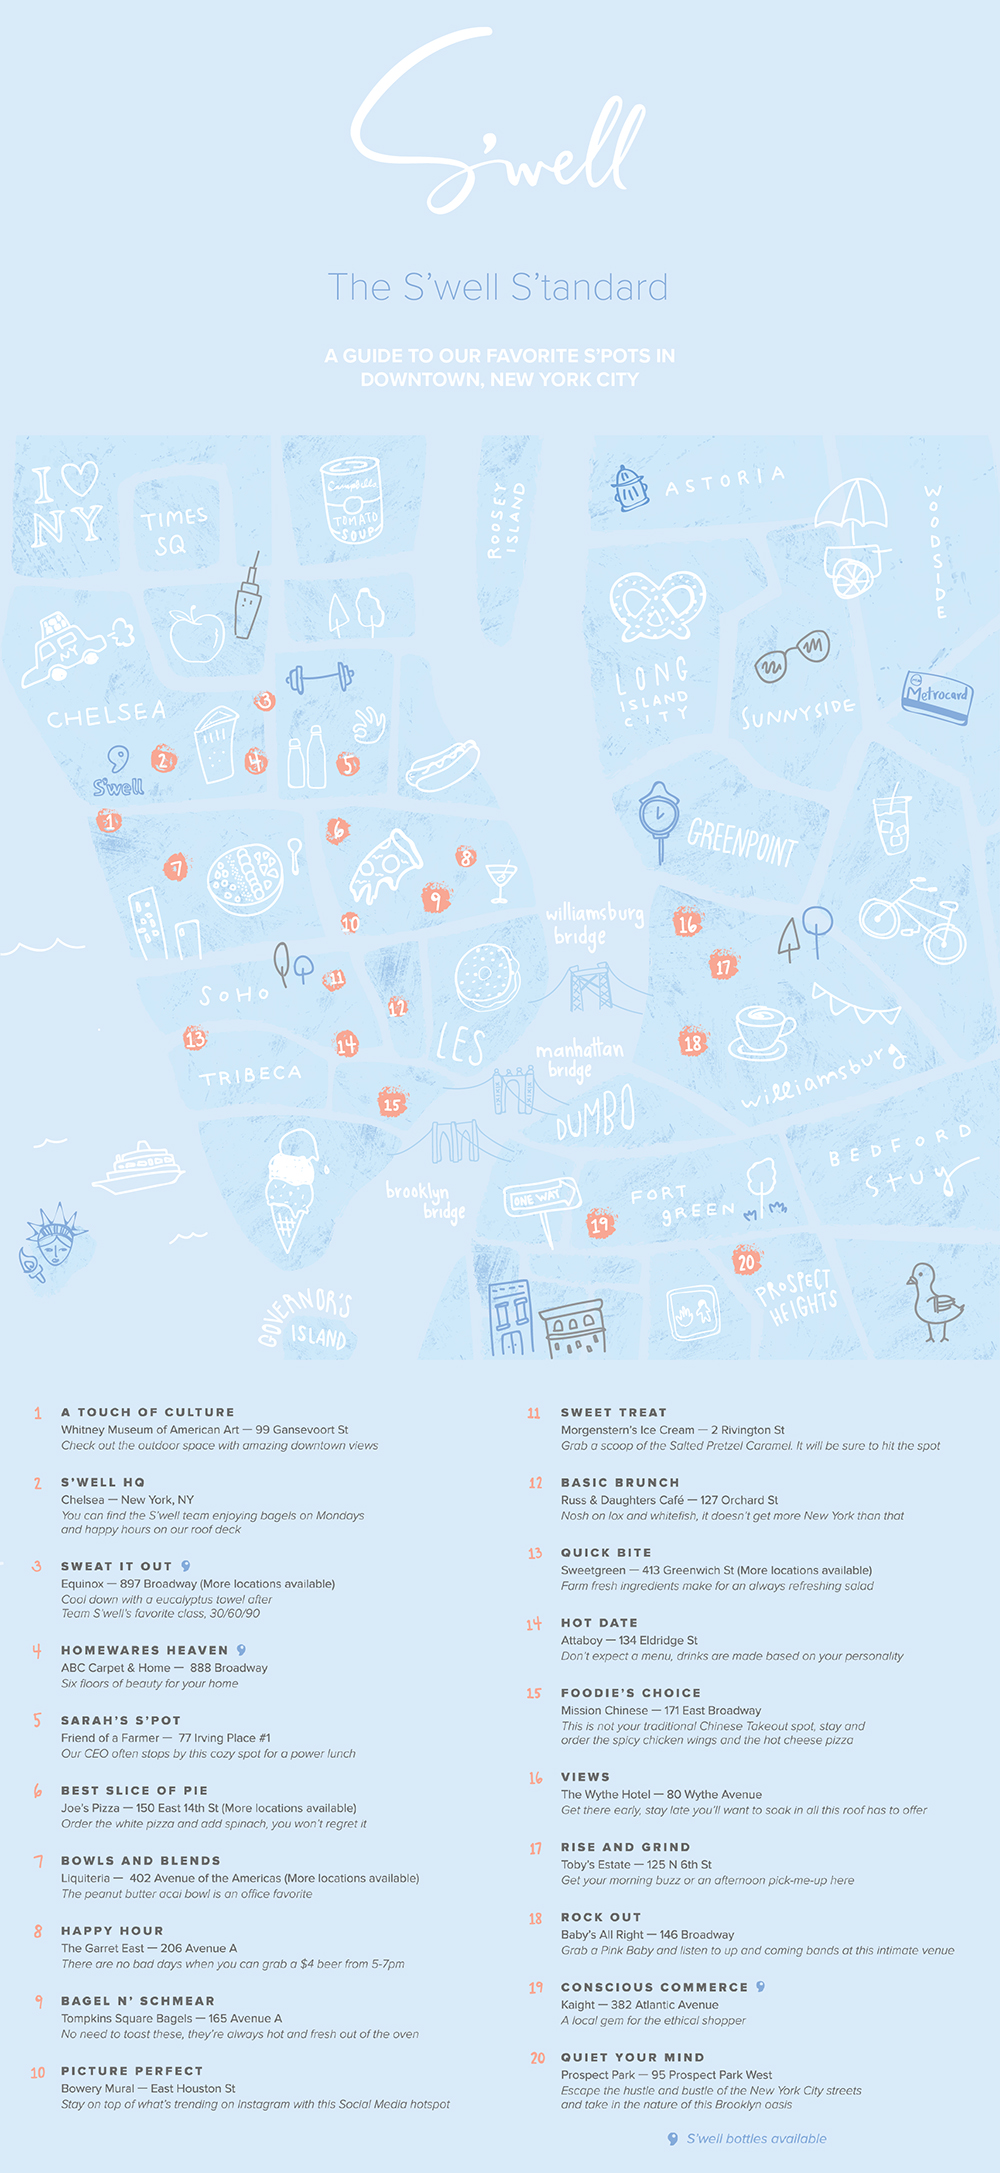 The S'well Standard: a map to all the best spots in downtown NYC, including food, museums, and concert venues